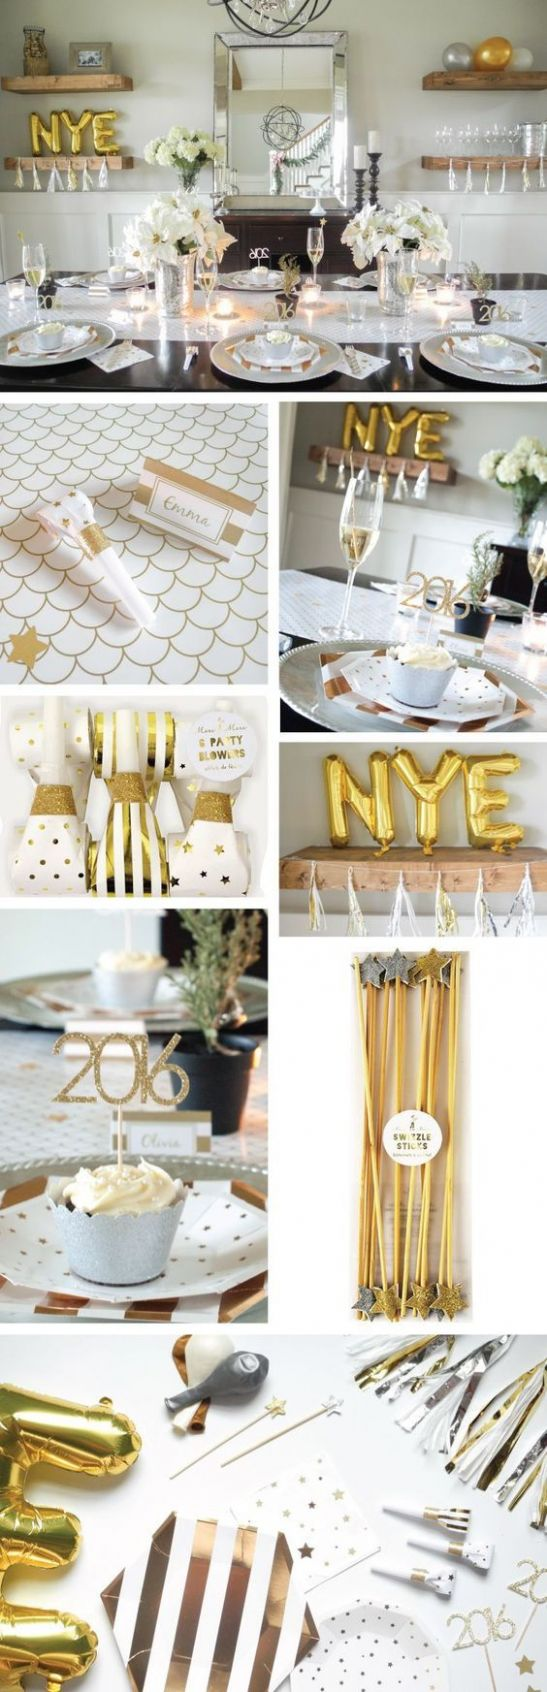 11 Popping DIY Home Decoration Ideas for New Year Party - Ezyshine ..